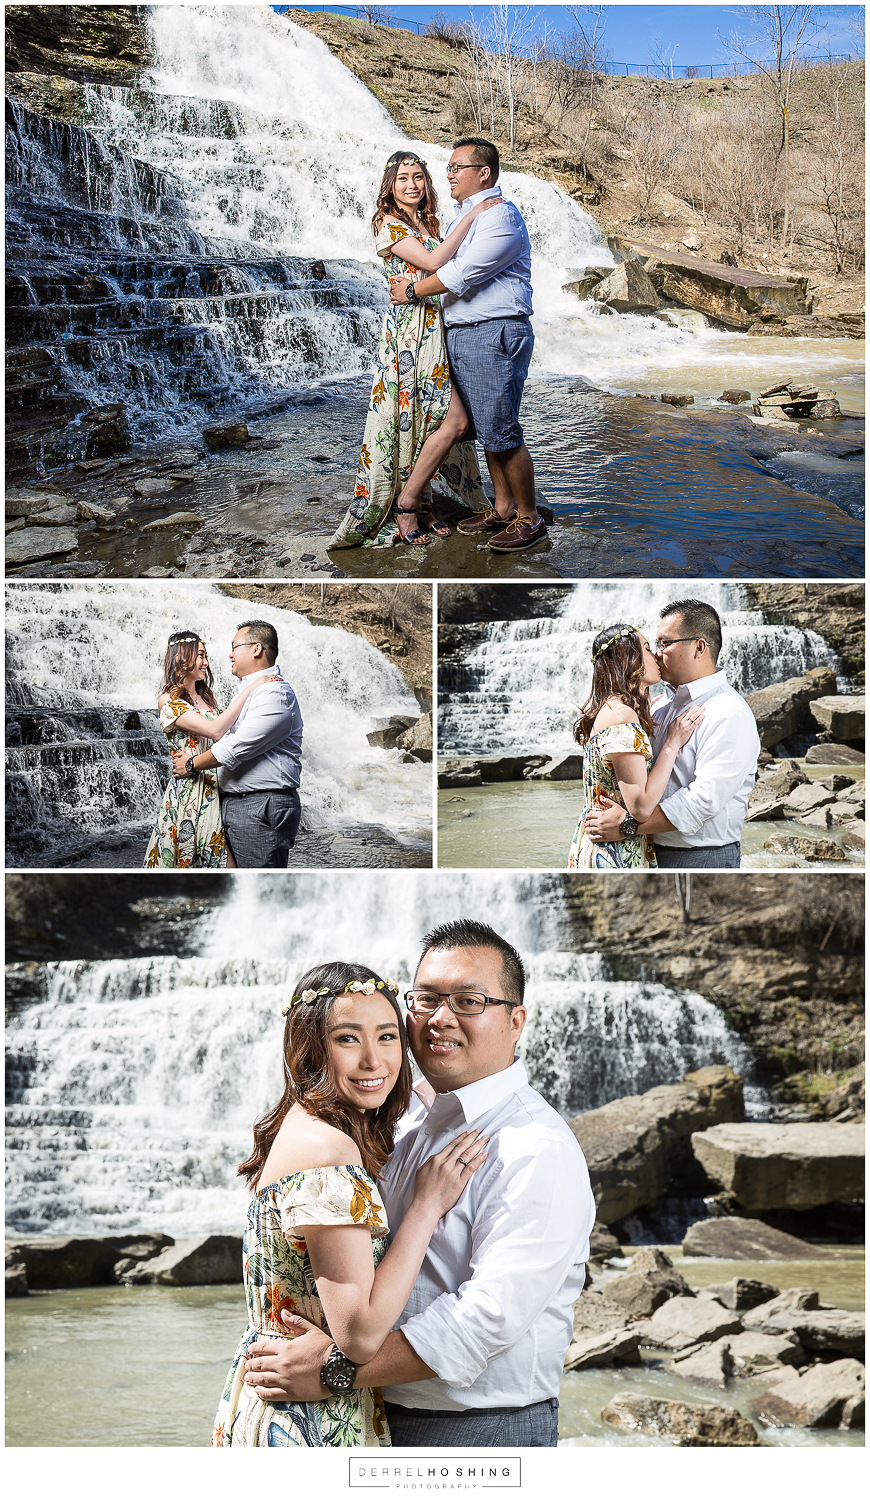 Albion-Falls-Engagment-Shoot-Hamilton-Toronto-Wedding-Photographer-Derrel-Hoshing-0002.jpg